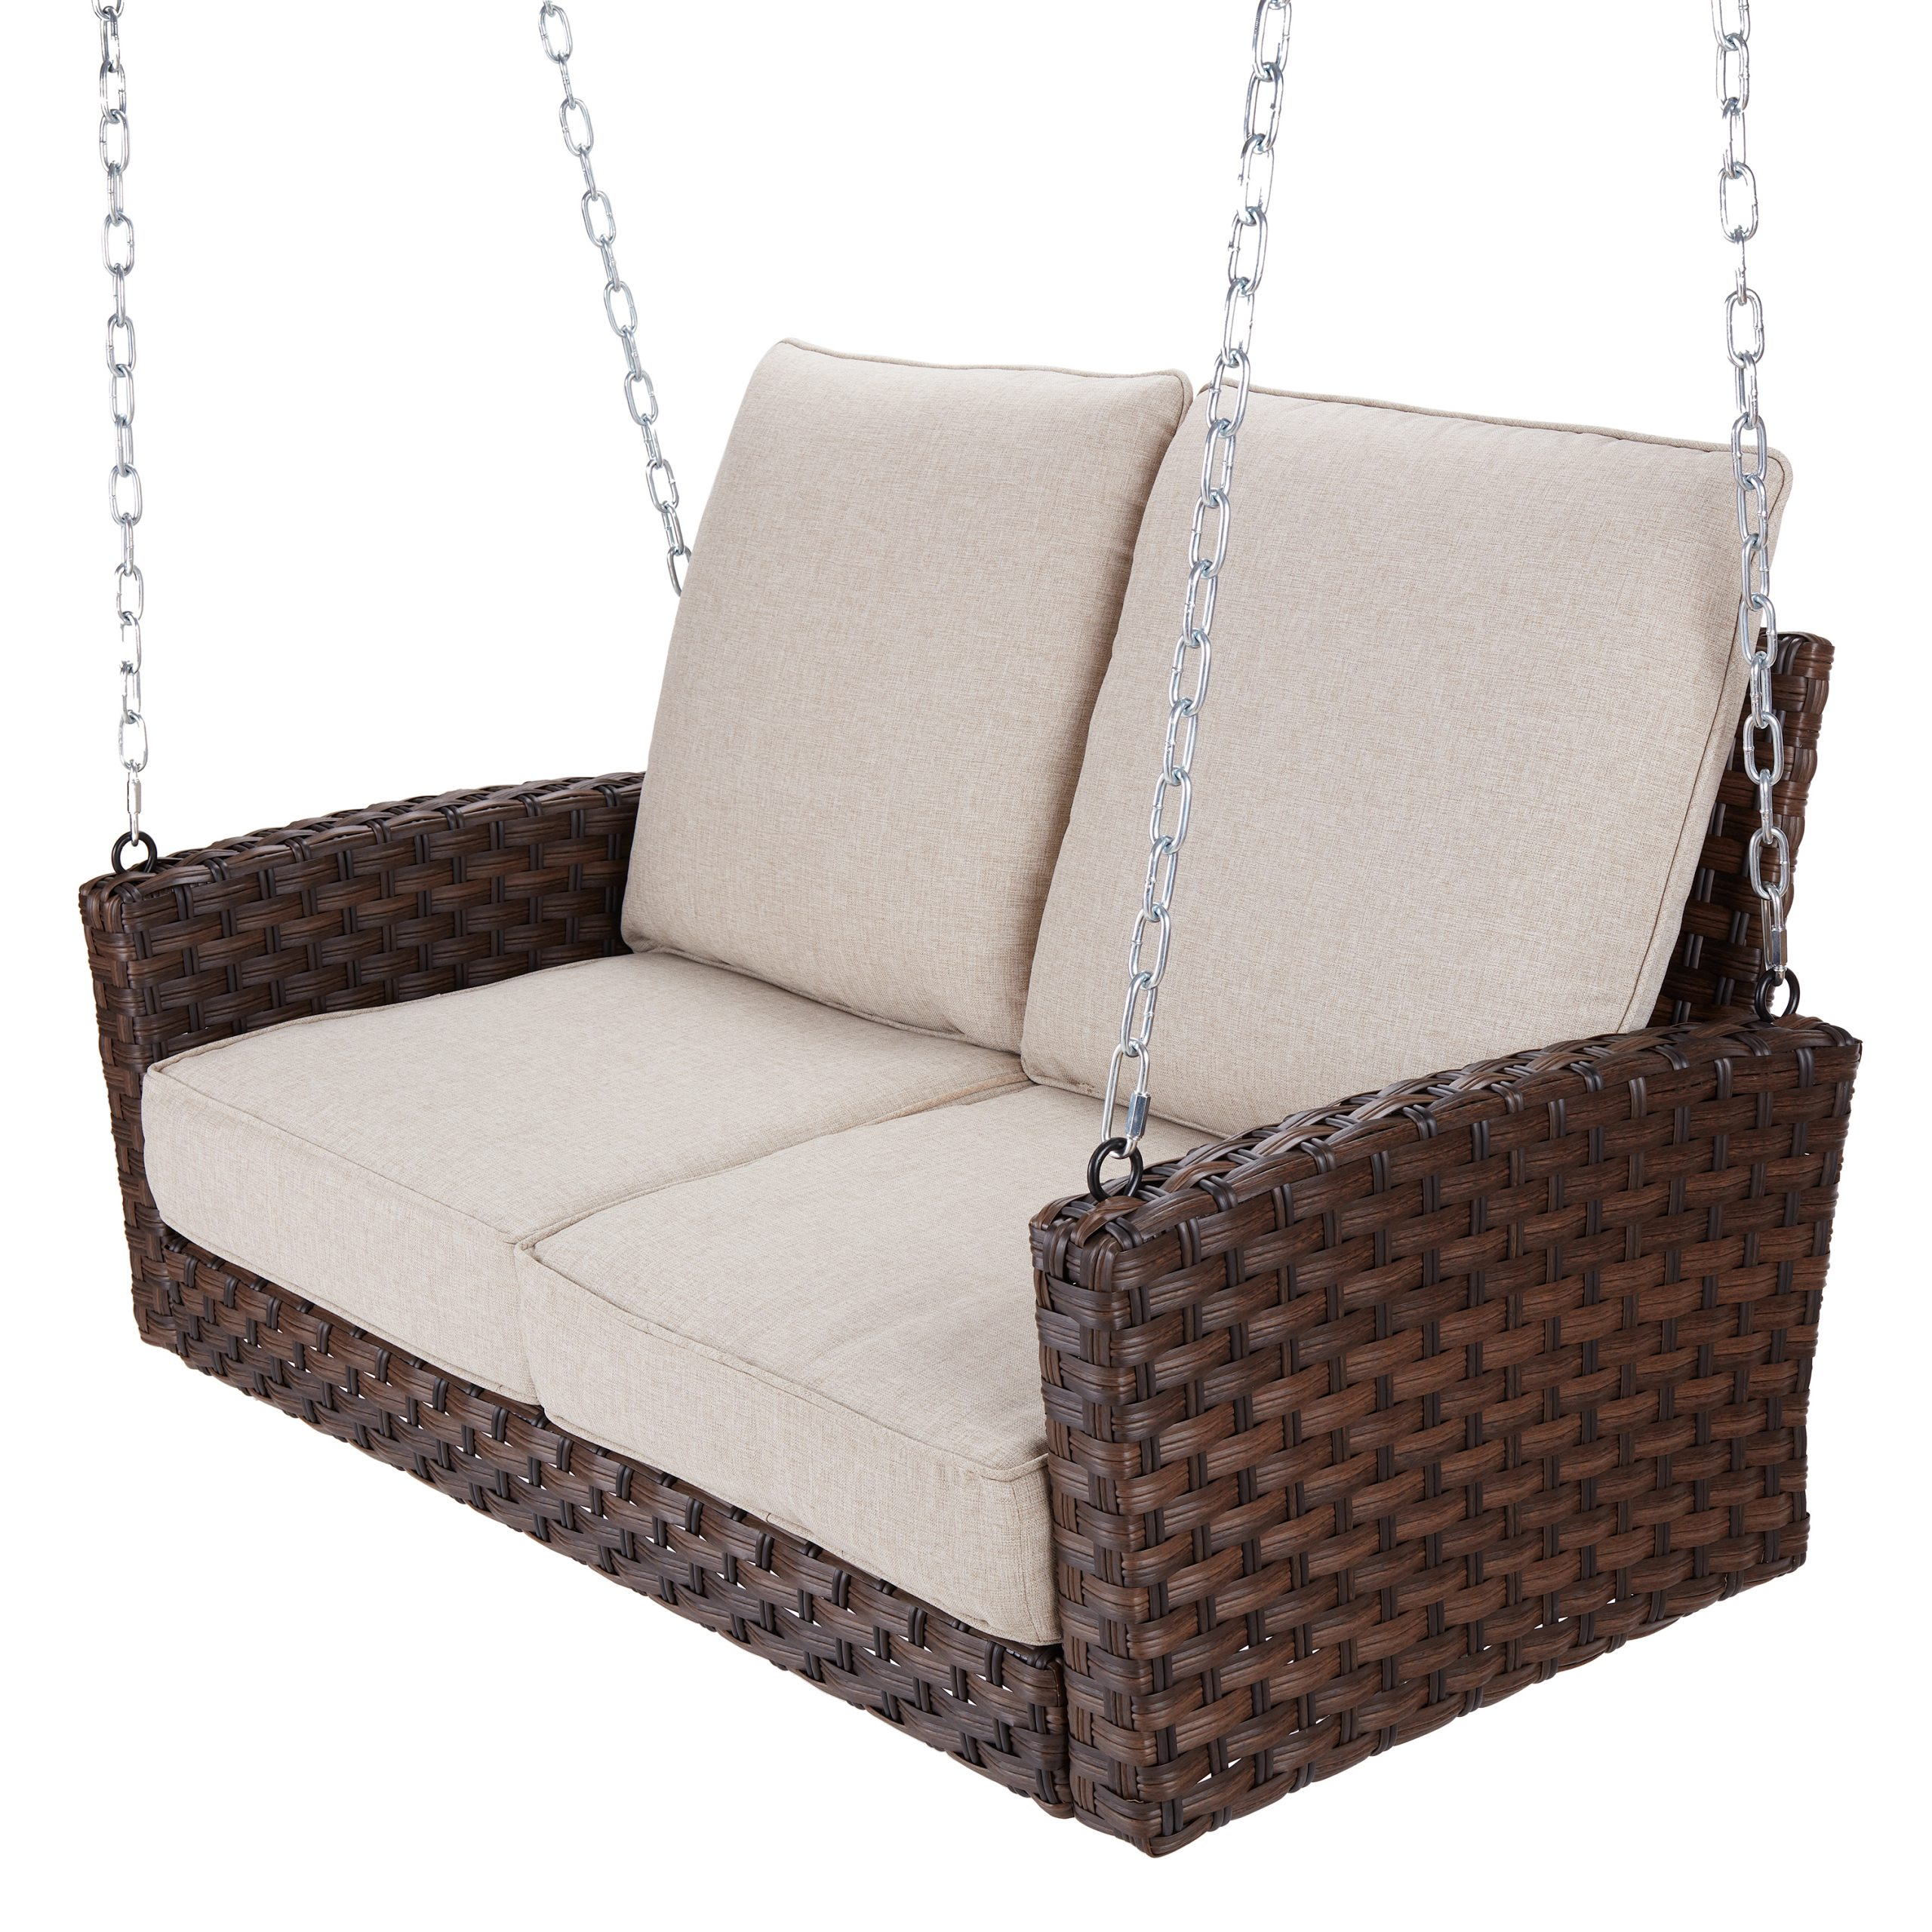 Better Homes & Gardens Hensley Outdoor Wicker Porch Swing Throughout 2 Person Outdoor Convertible Canopy Swing Gliders With Removable Cushions Beige (View 18 of 25)